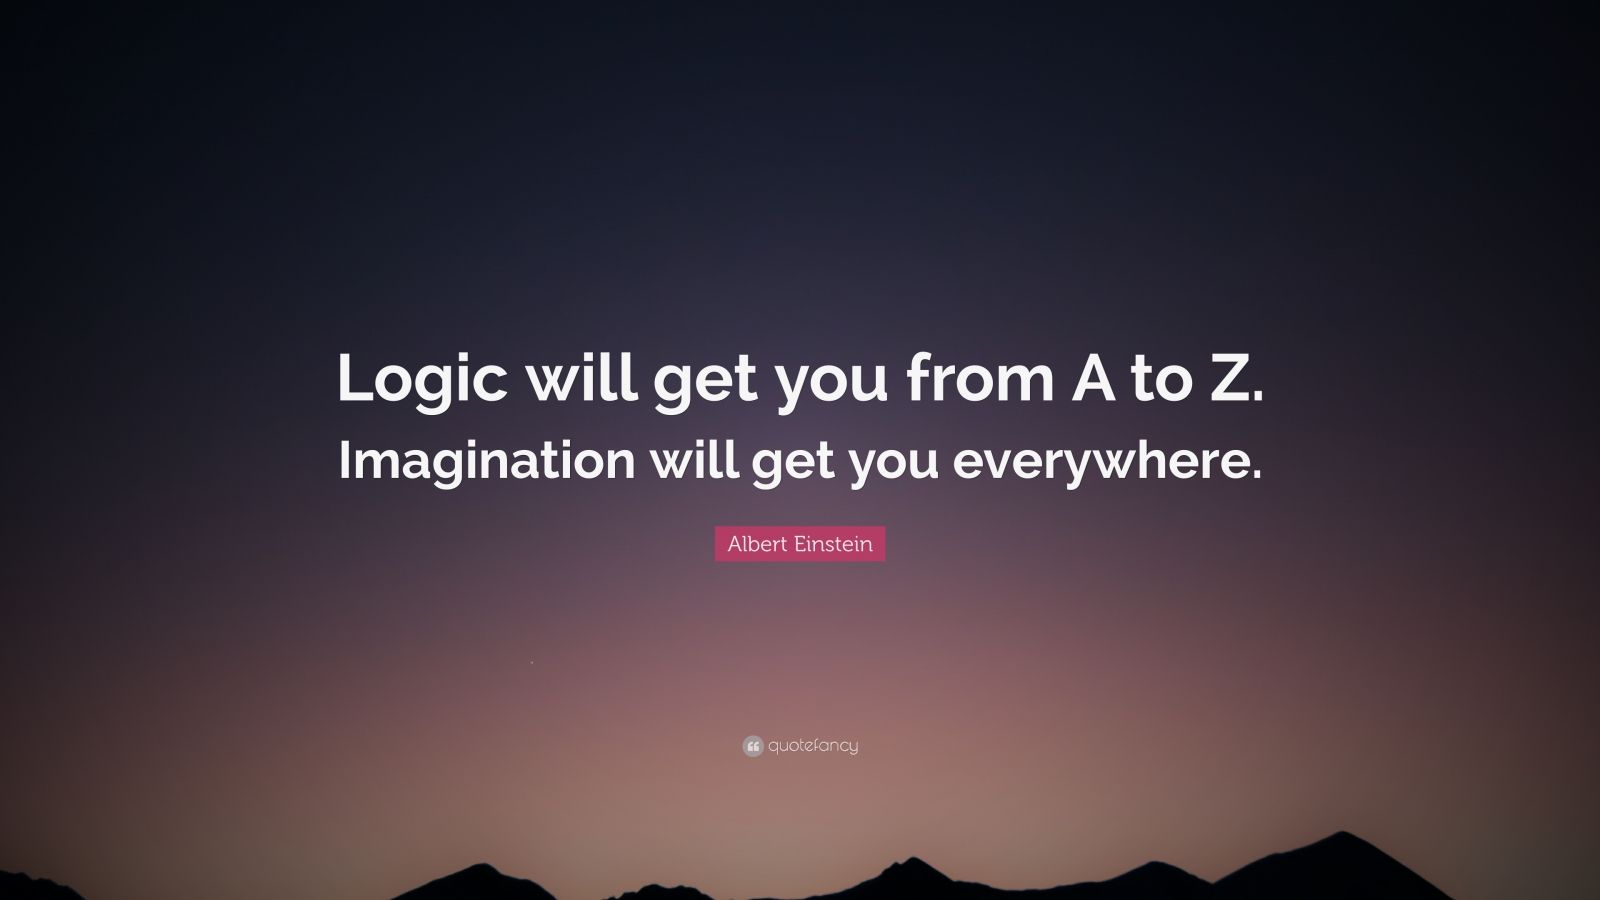 Motivational Life Quotes Wallpapers Albert Einstein Quote Logic Will Get You From A To Z